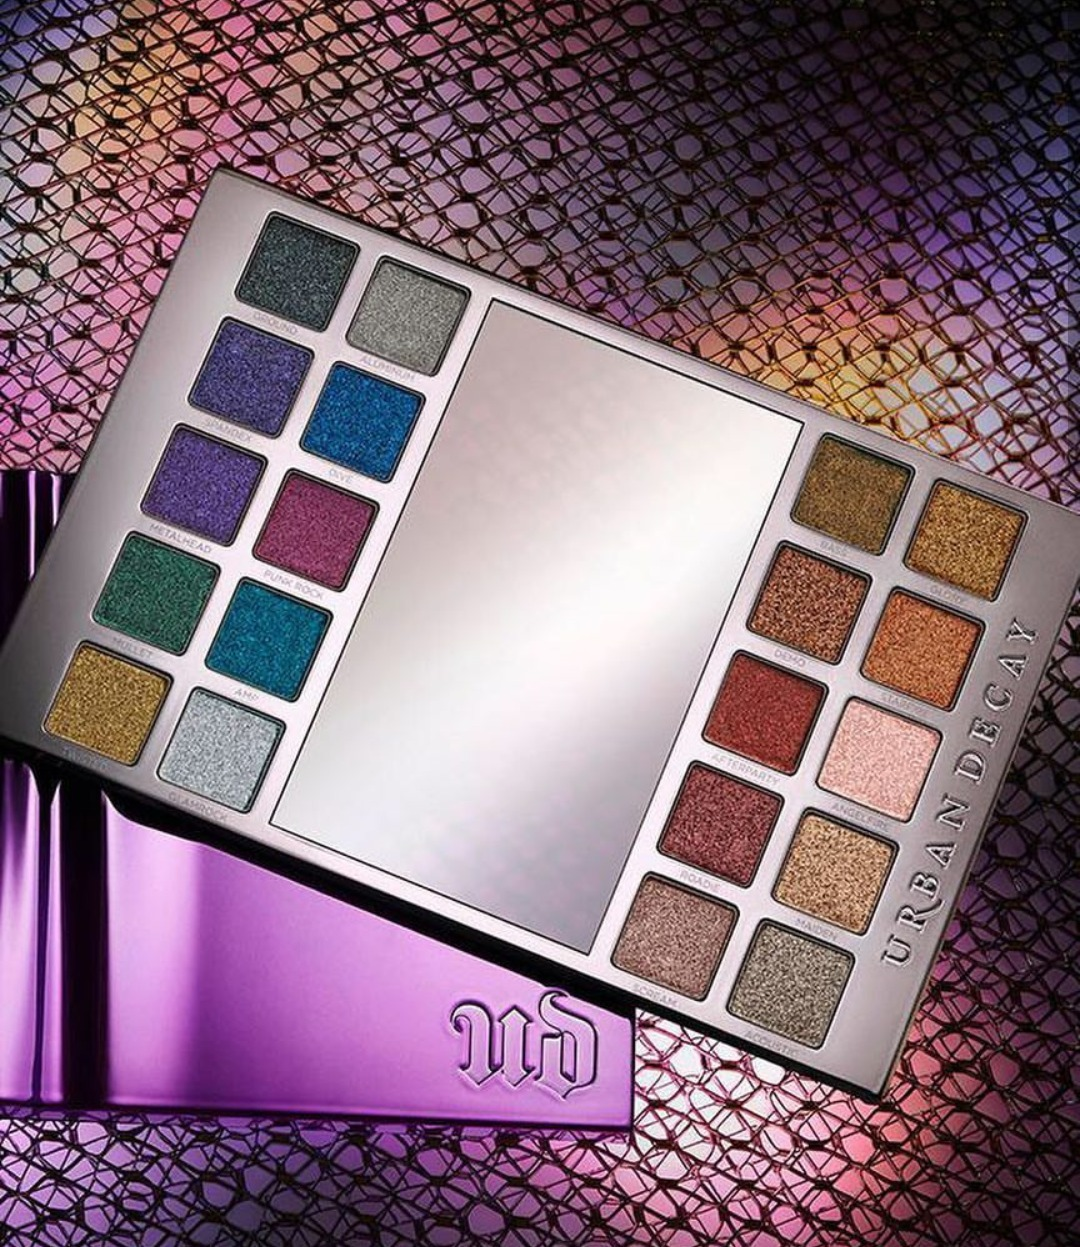 ホリデー限定☆Urban Decay☆HEAVY METALS Metallic Eyeshadow